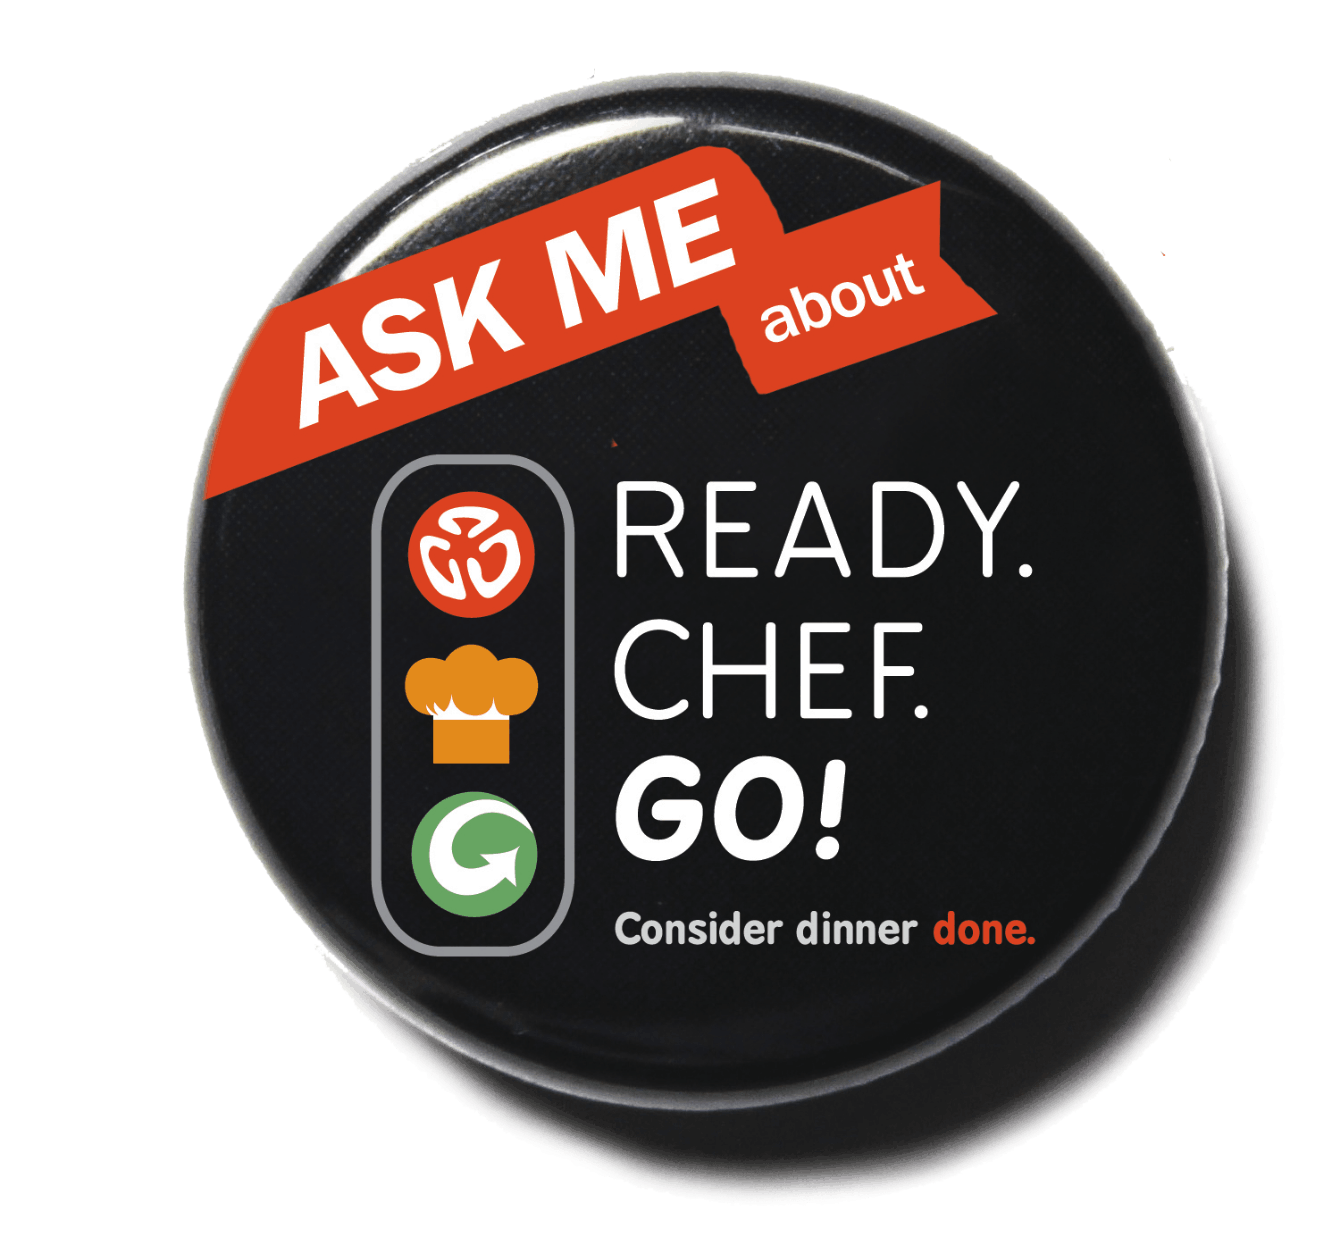 Ready. Chef. Go! button pin with logo and tag.